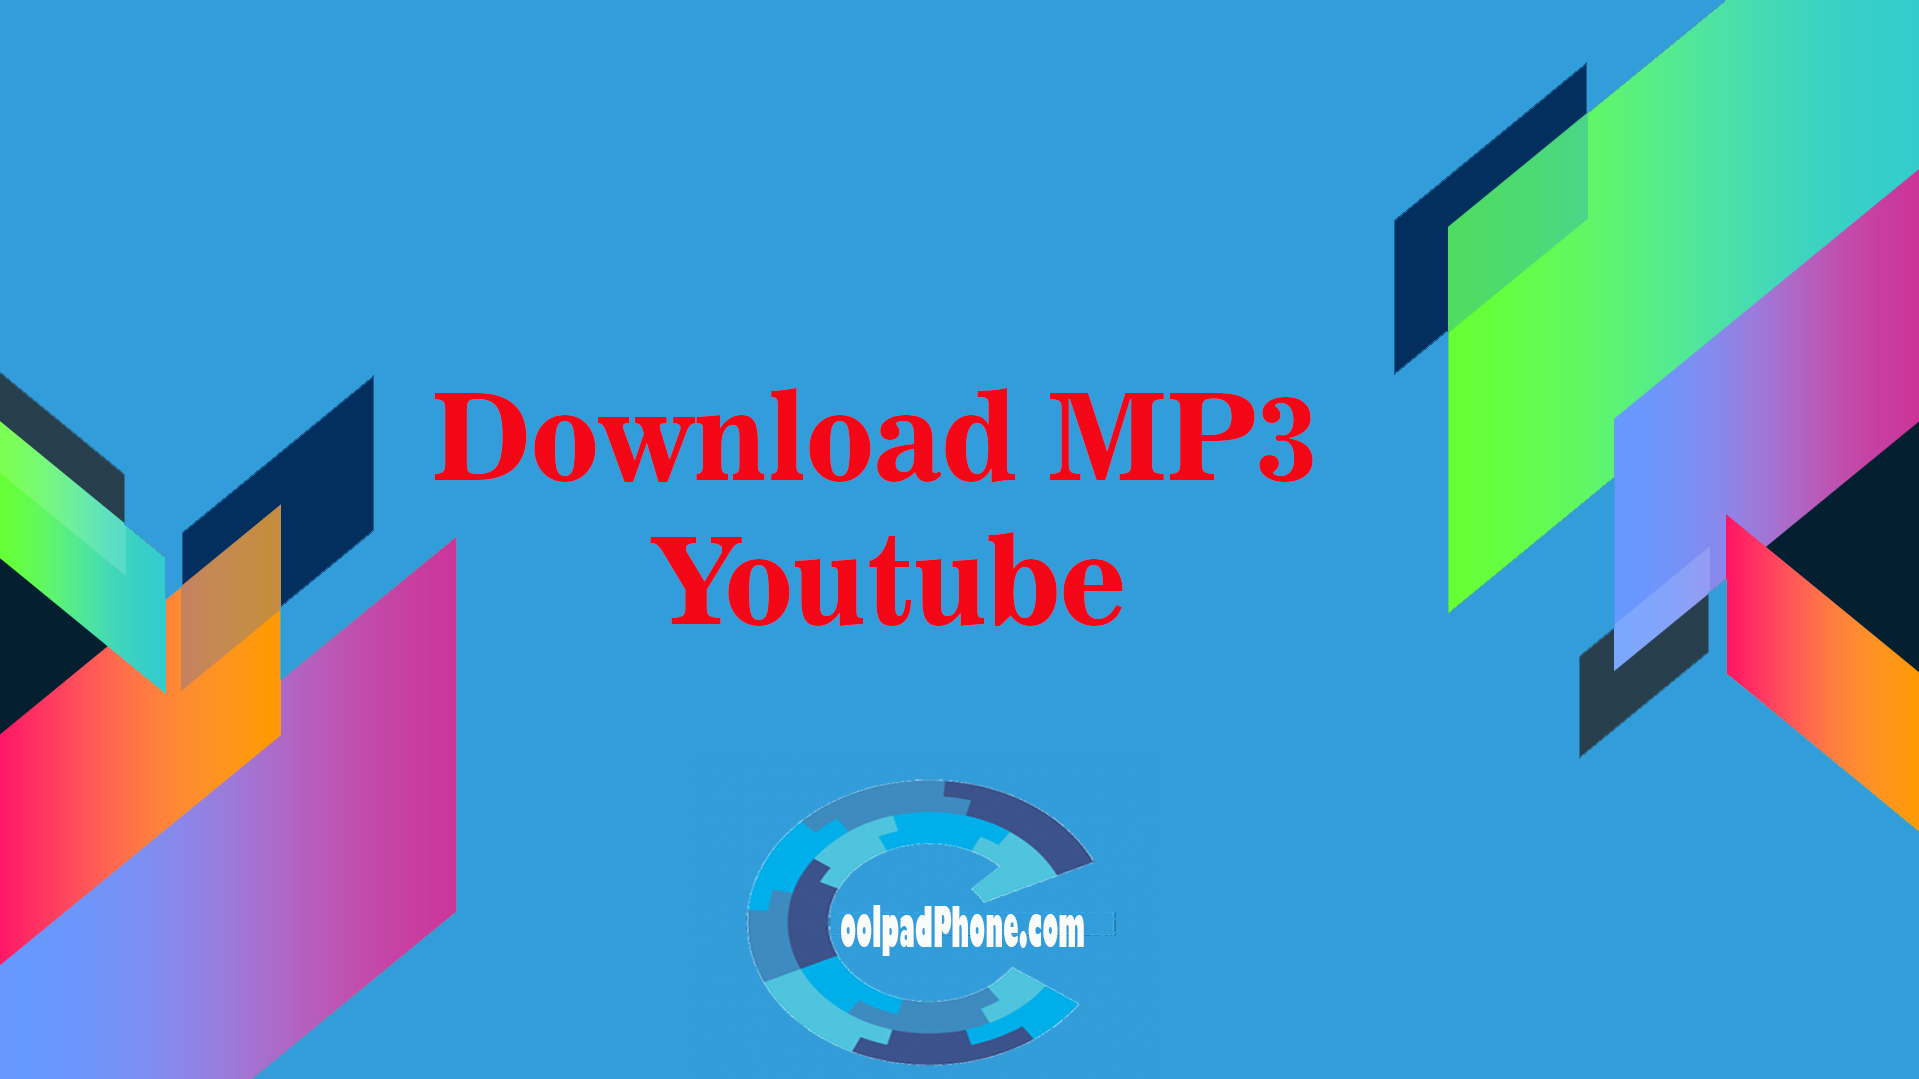 Download MP3 Youtube